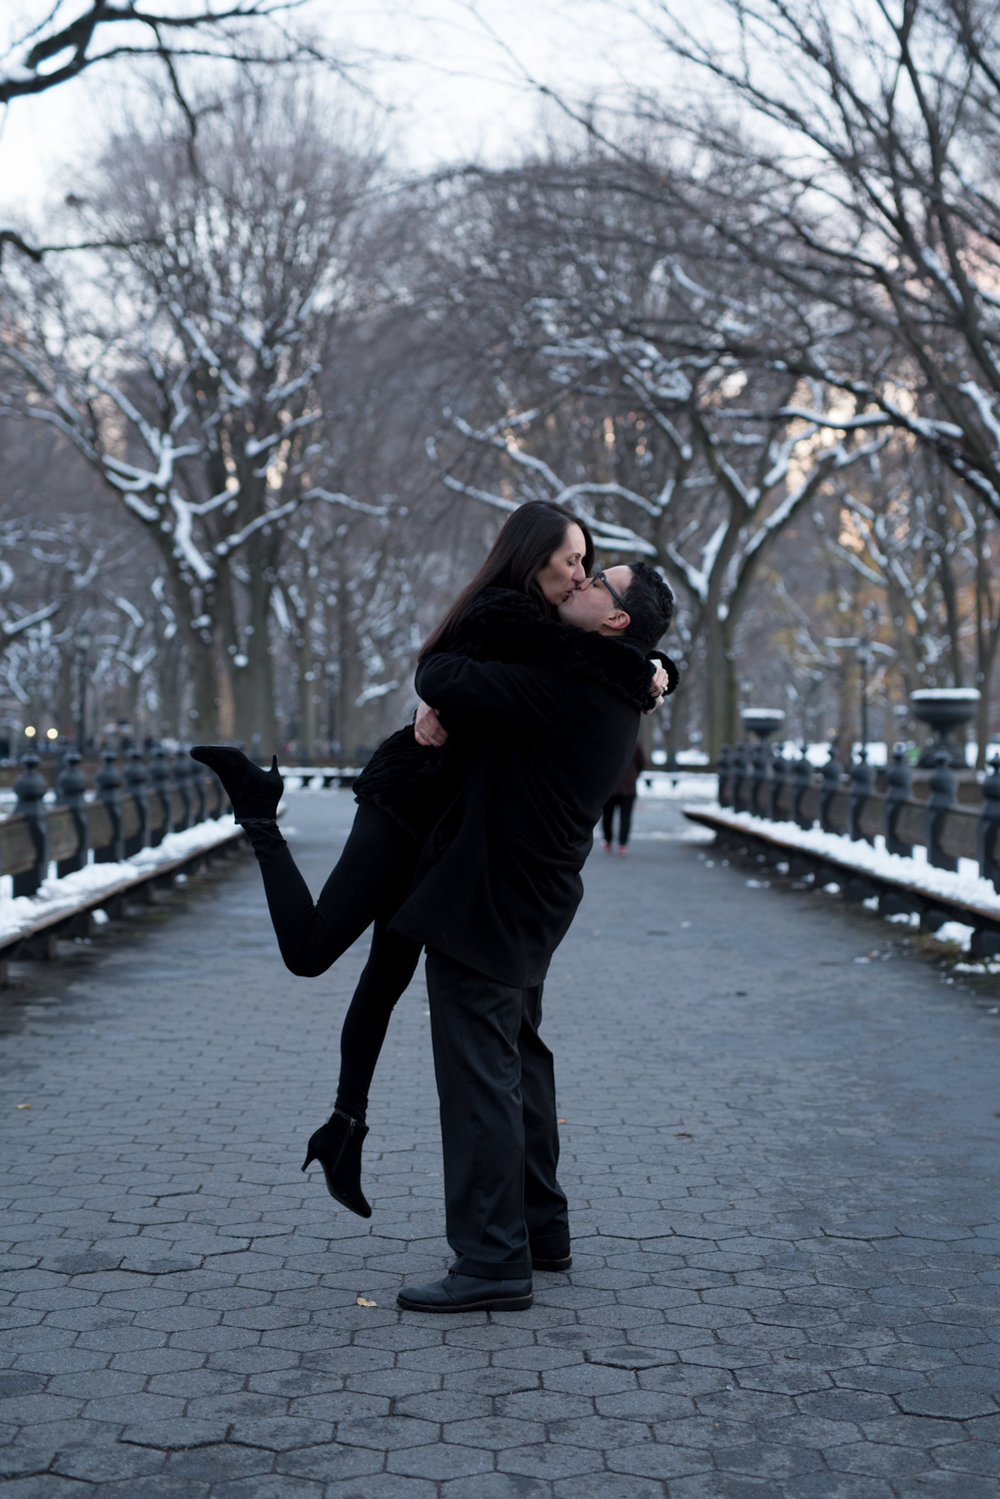 Carmelo+Meg- Central Park Winter Engagement Session- New York City- Olivia Christina Photography-81.JPG